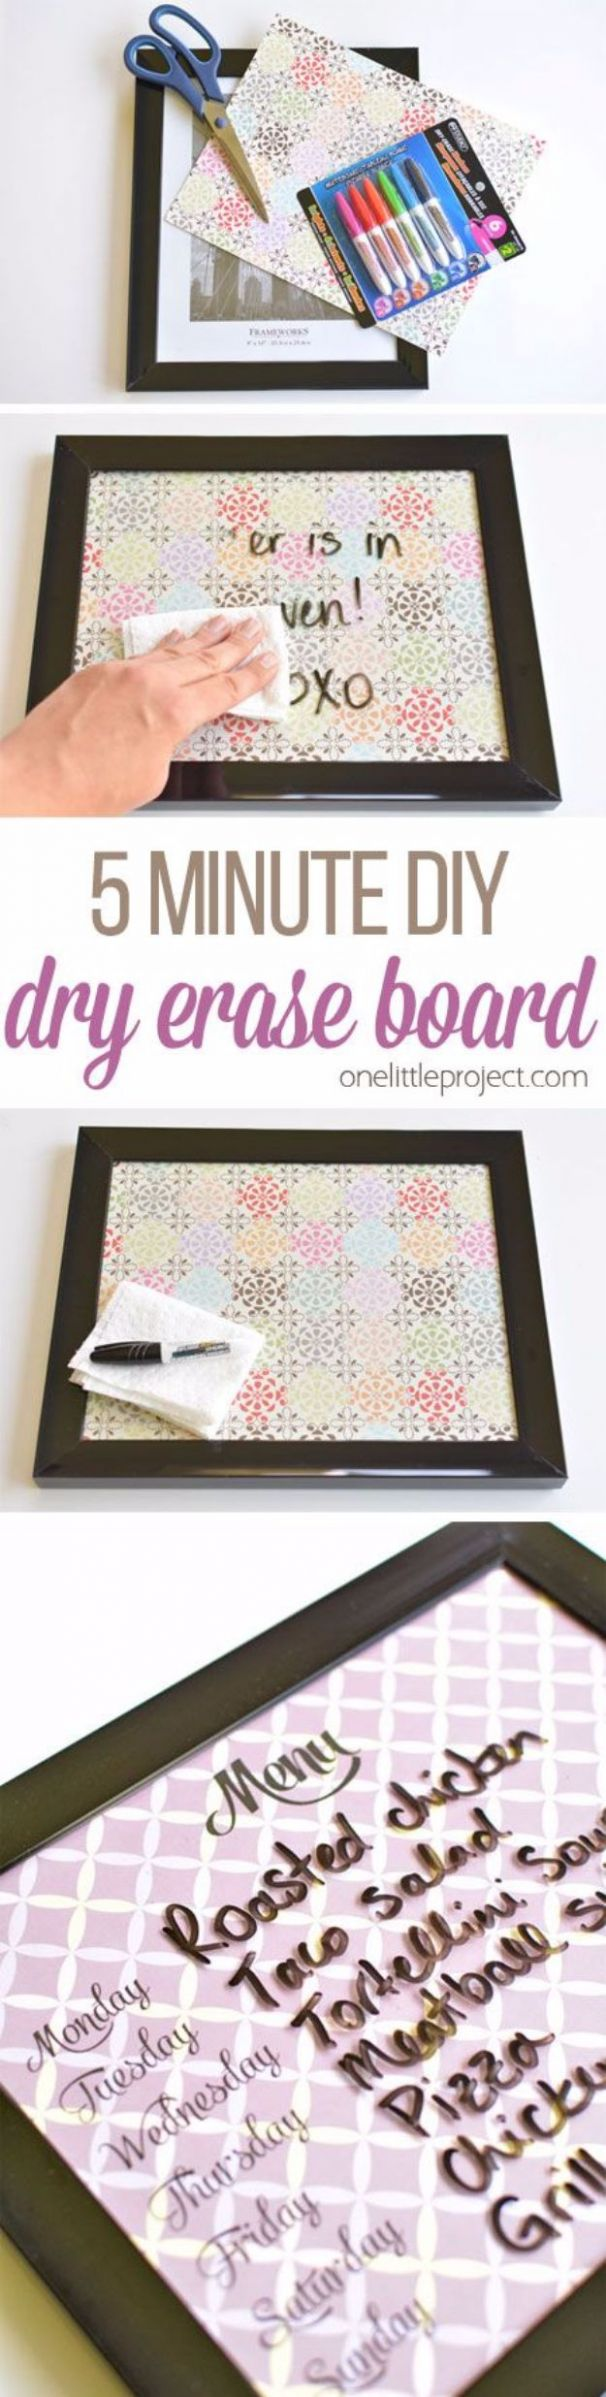 10 More Crafts to Make and Sell